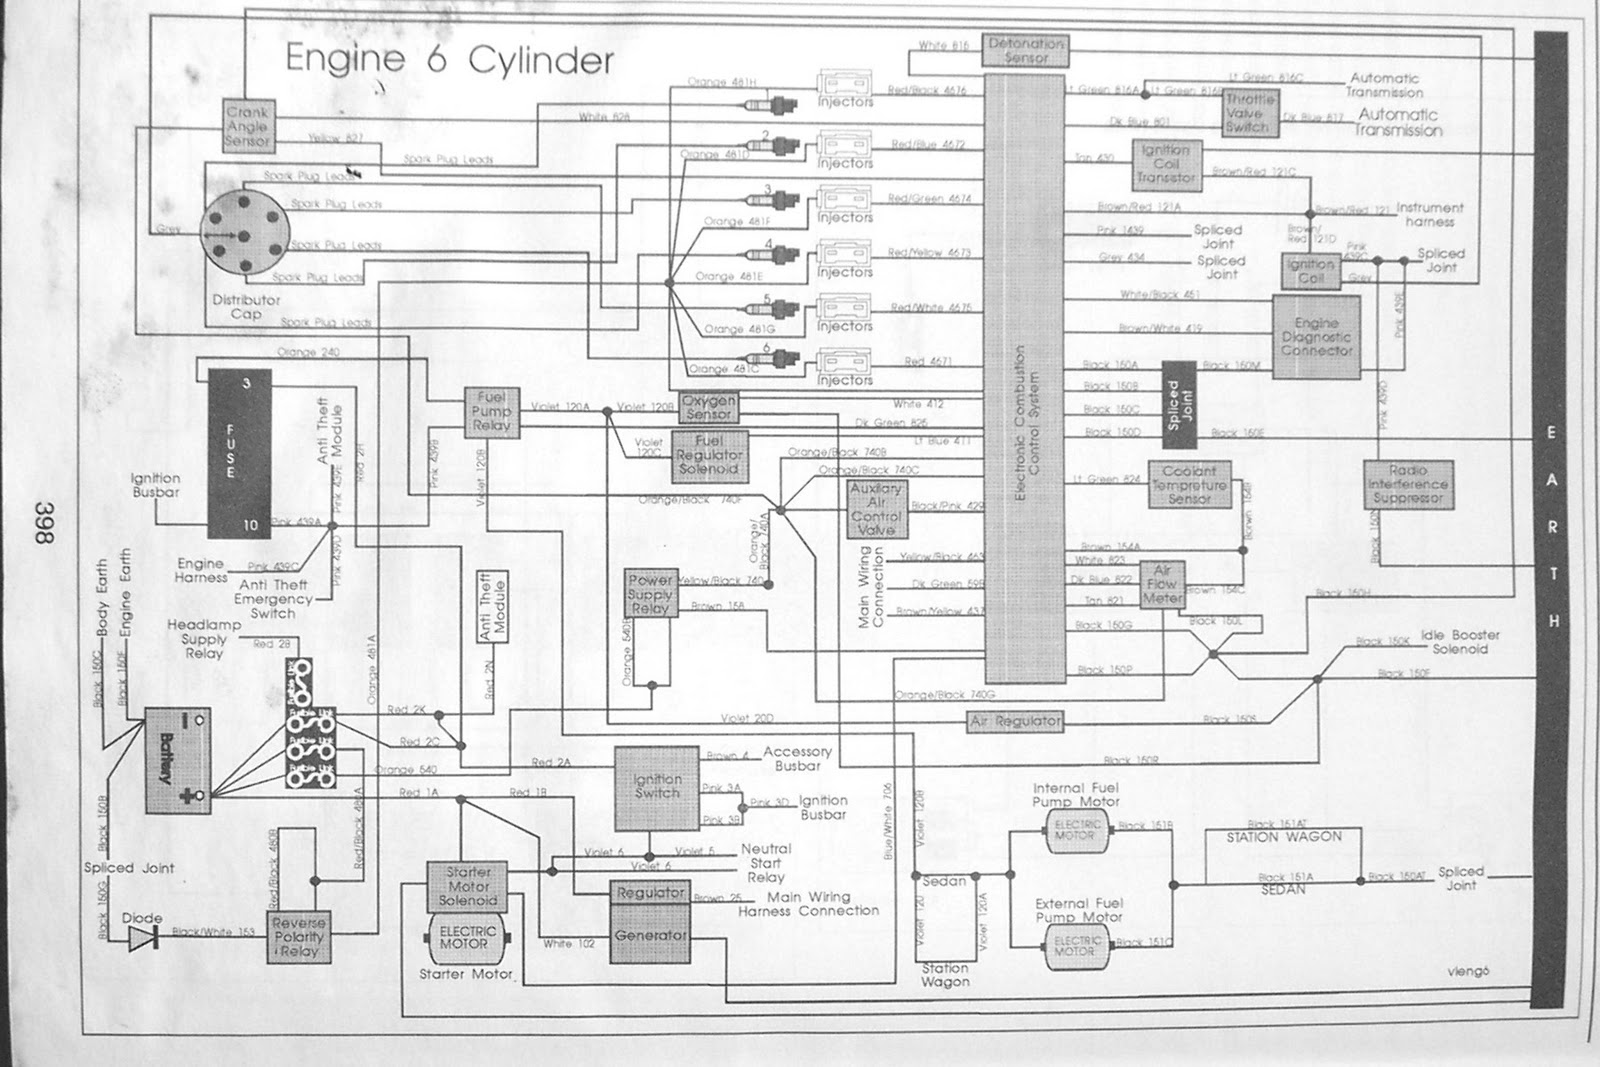 rb30 wiring diagrams 280zx project rh 280zxproject blogspot com vl ignition wiring diagram vl alternator wiring diagram